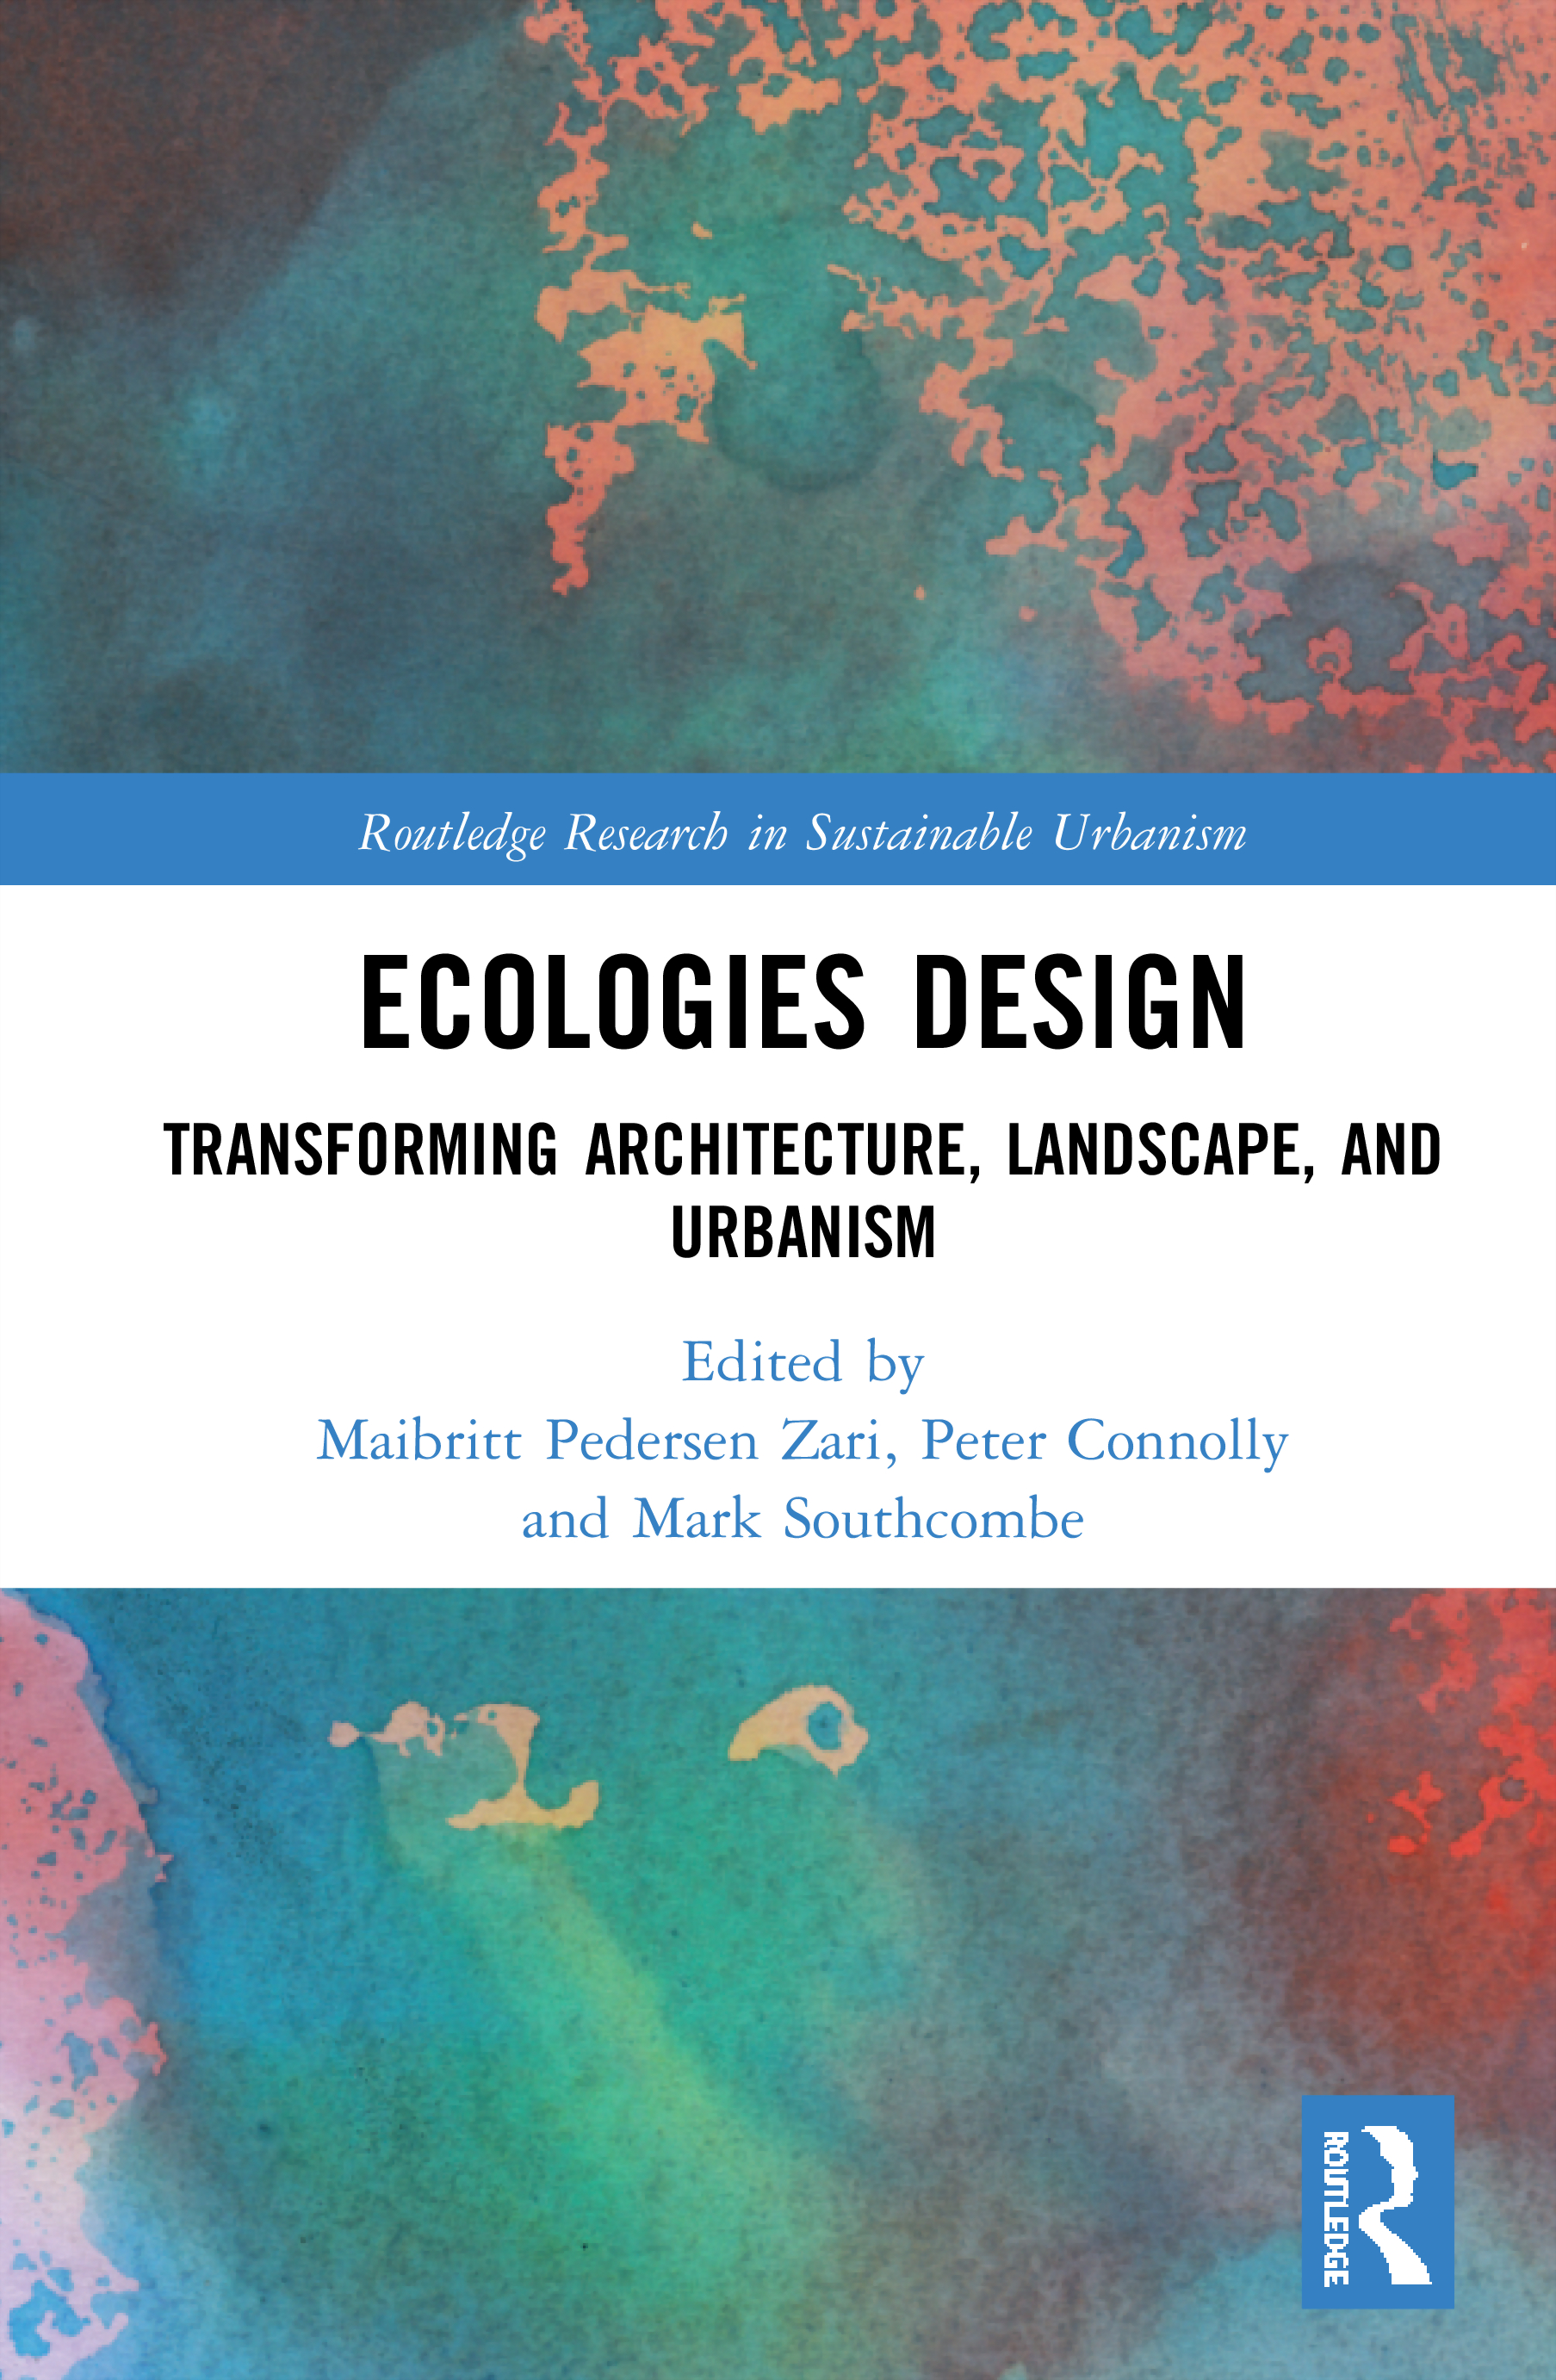 Ecologies Design: Transforming Architecture, Landscape, and Urbanism book cover